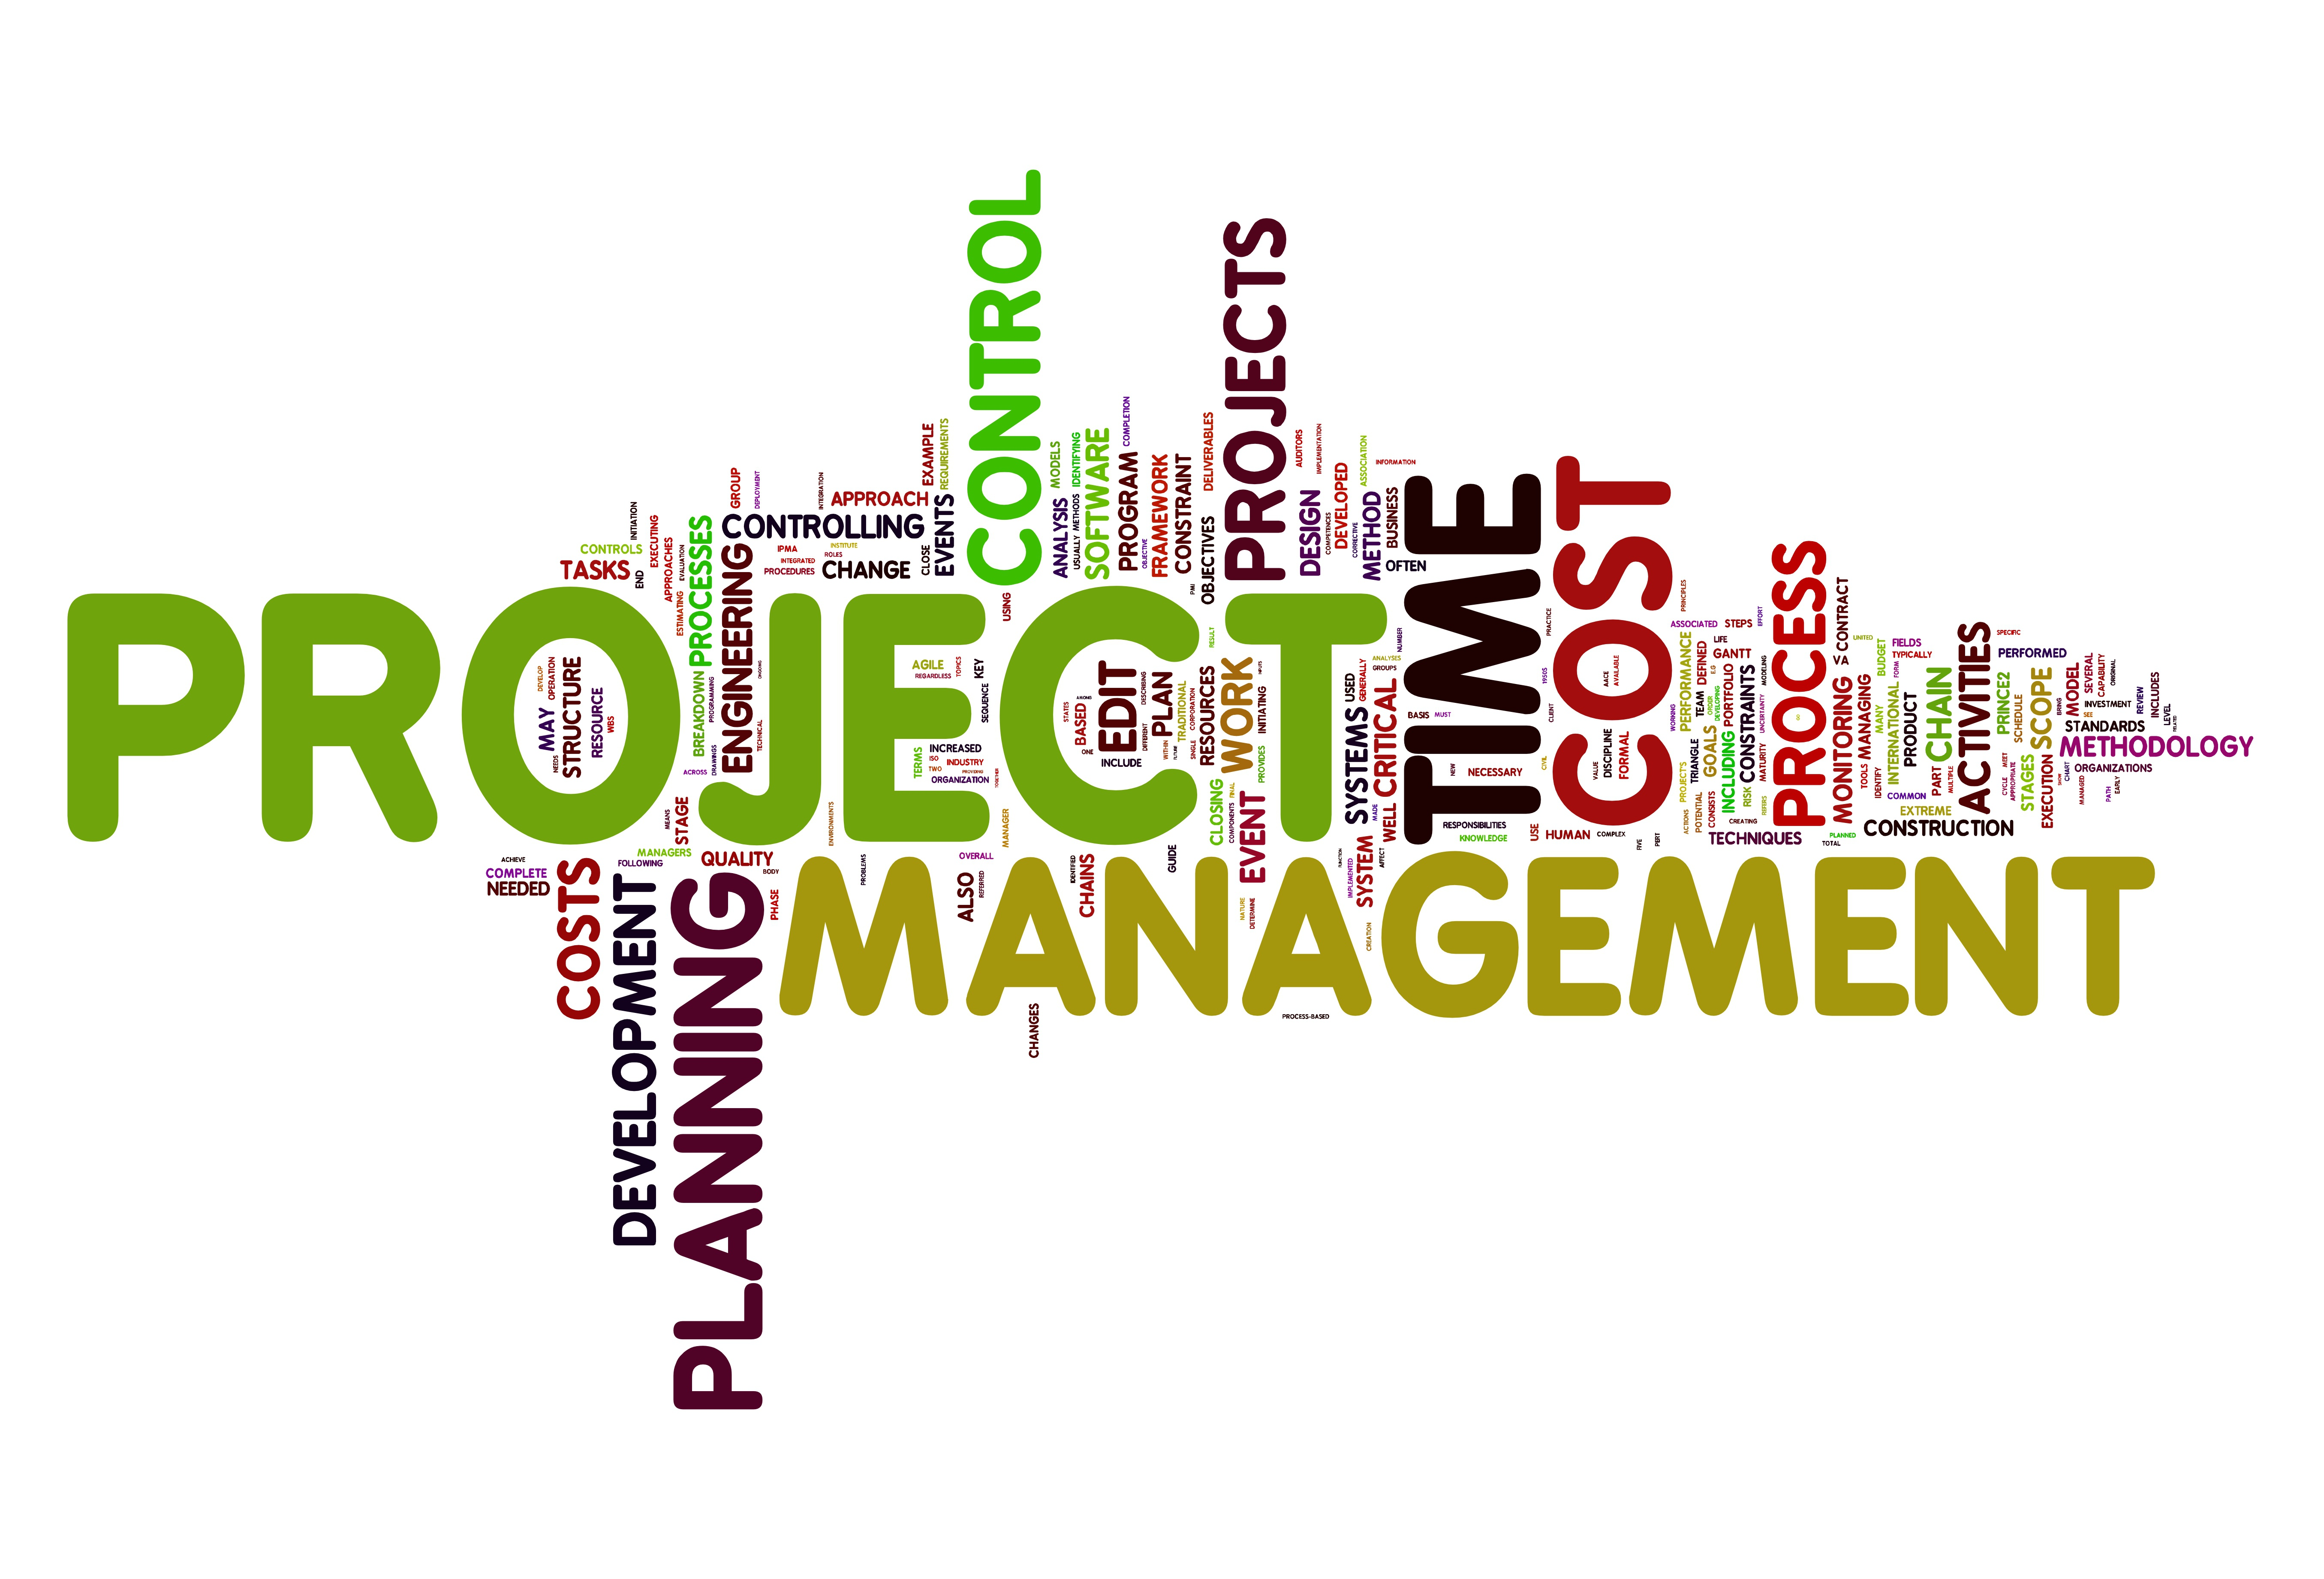 The Project Management online program at Brentwood University is designed for professionals of all experience levels, some of whom may be looking to advance in their career and others who need to learn to lead project with diverse nature